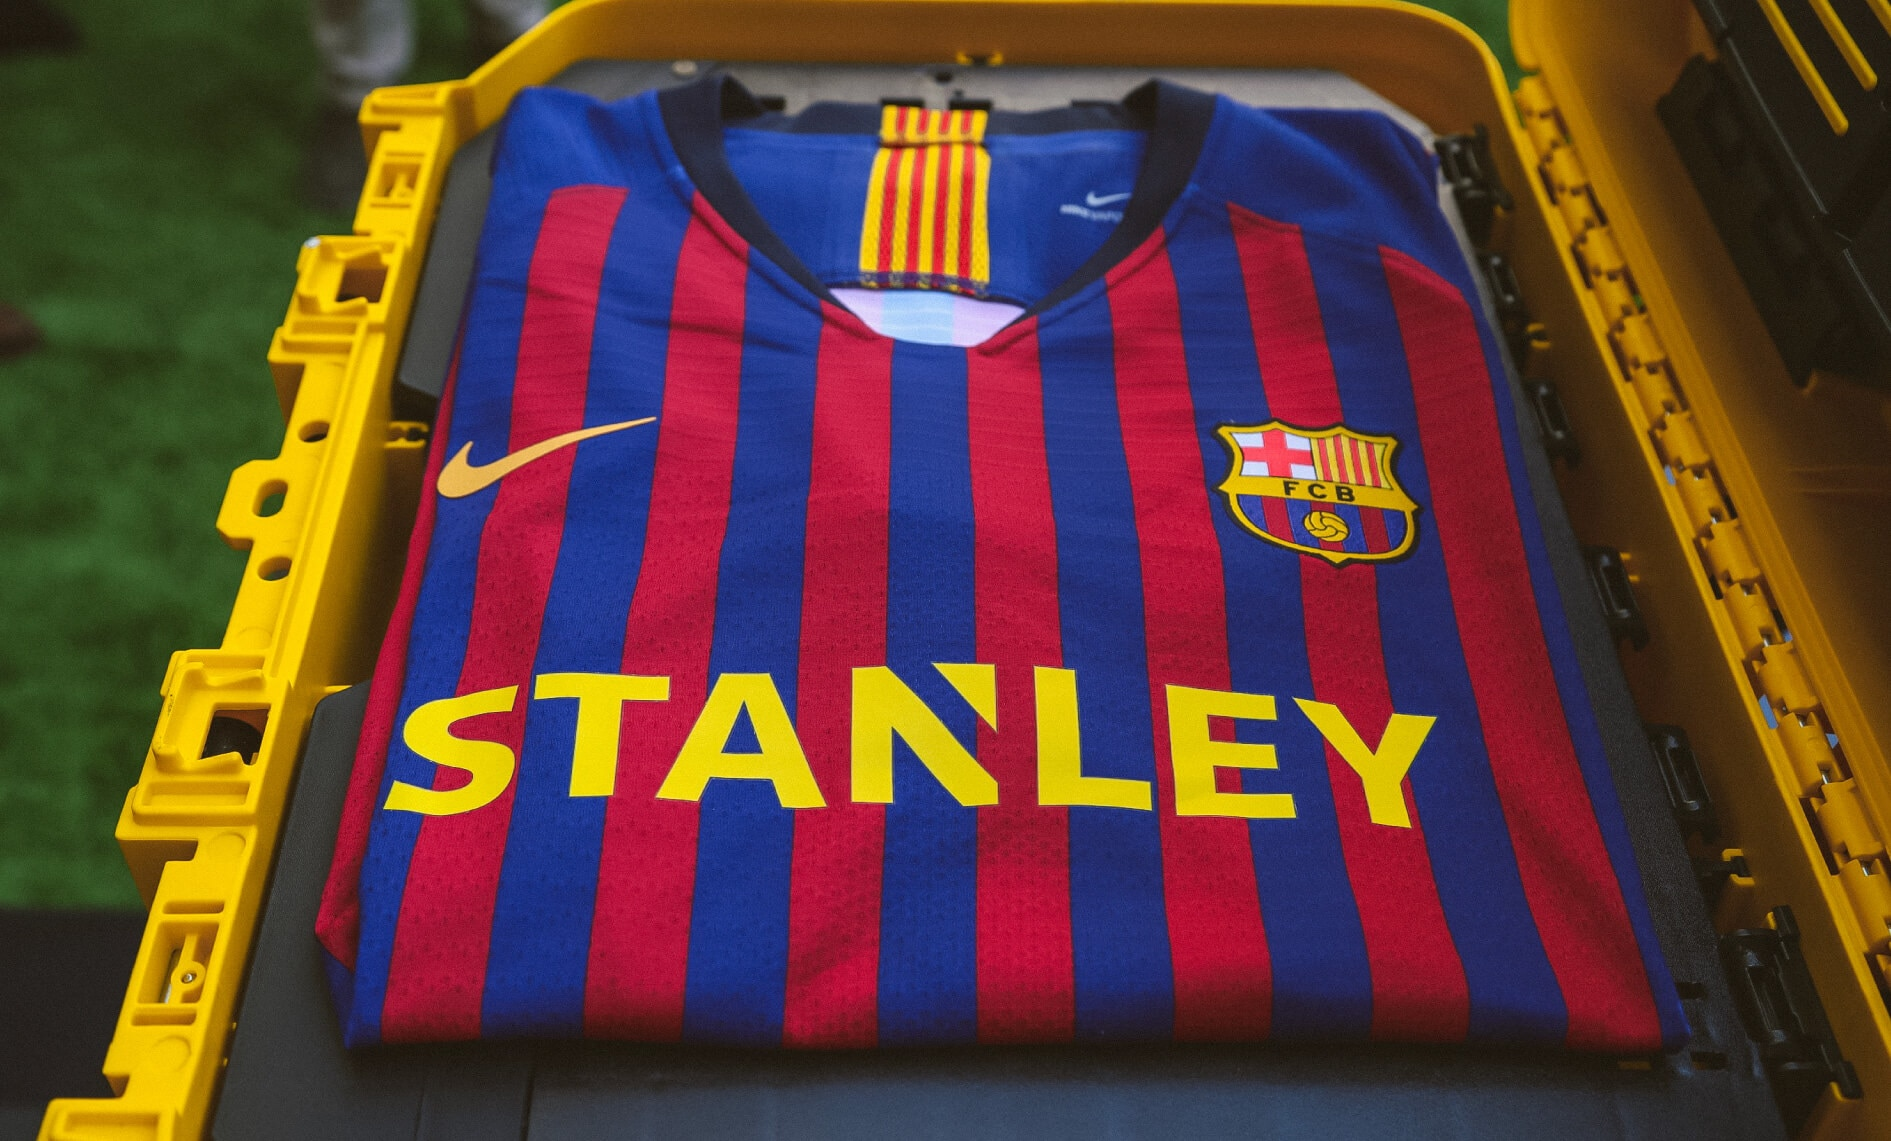 STANLEY Becomes the First Main Jersey Partner of FC Barcelona Women's Team